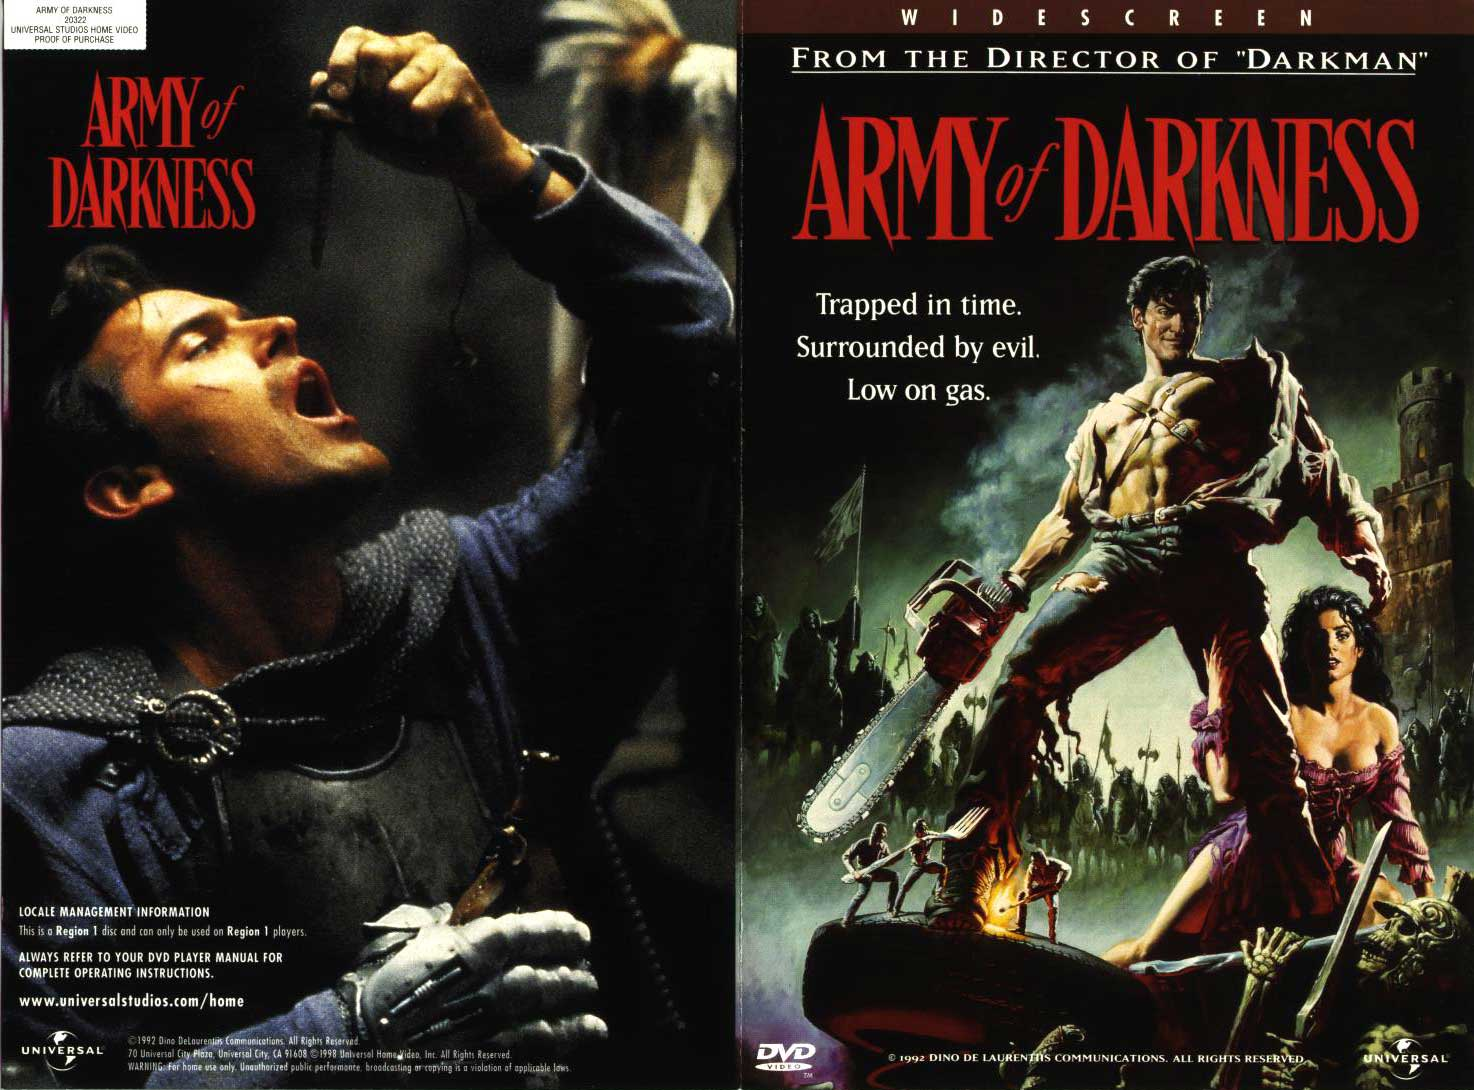 DVD: ARMY OF DARKNESS - Widescreen (Region 1 - US/Canada ...